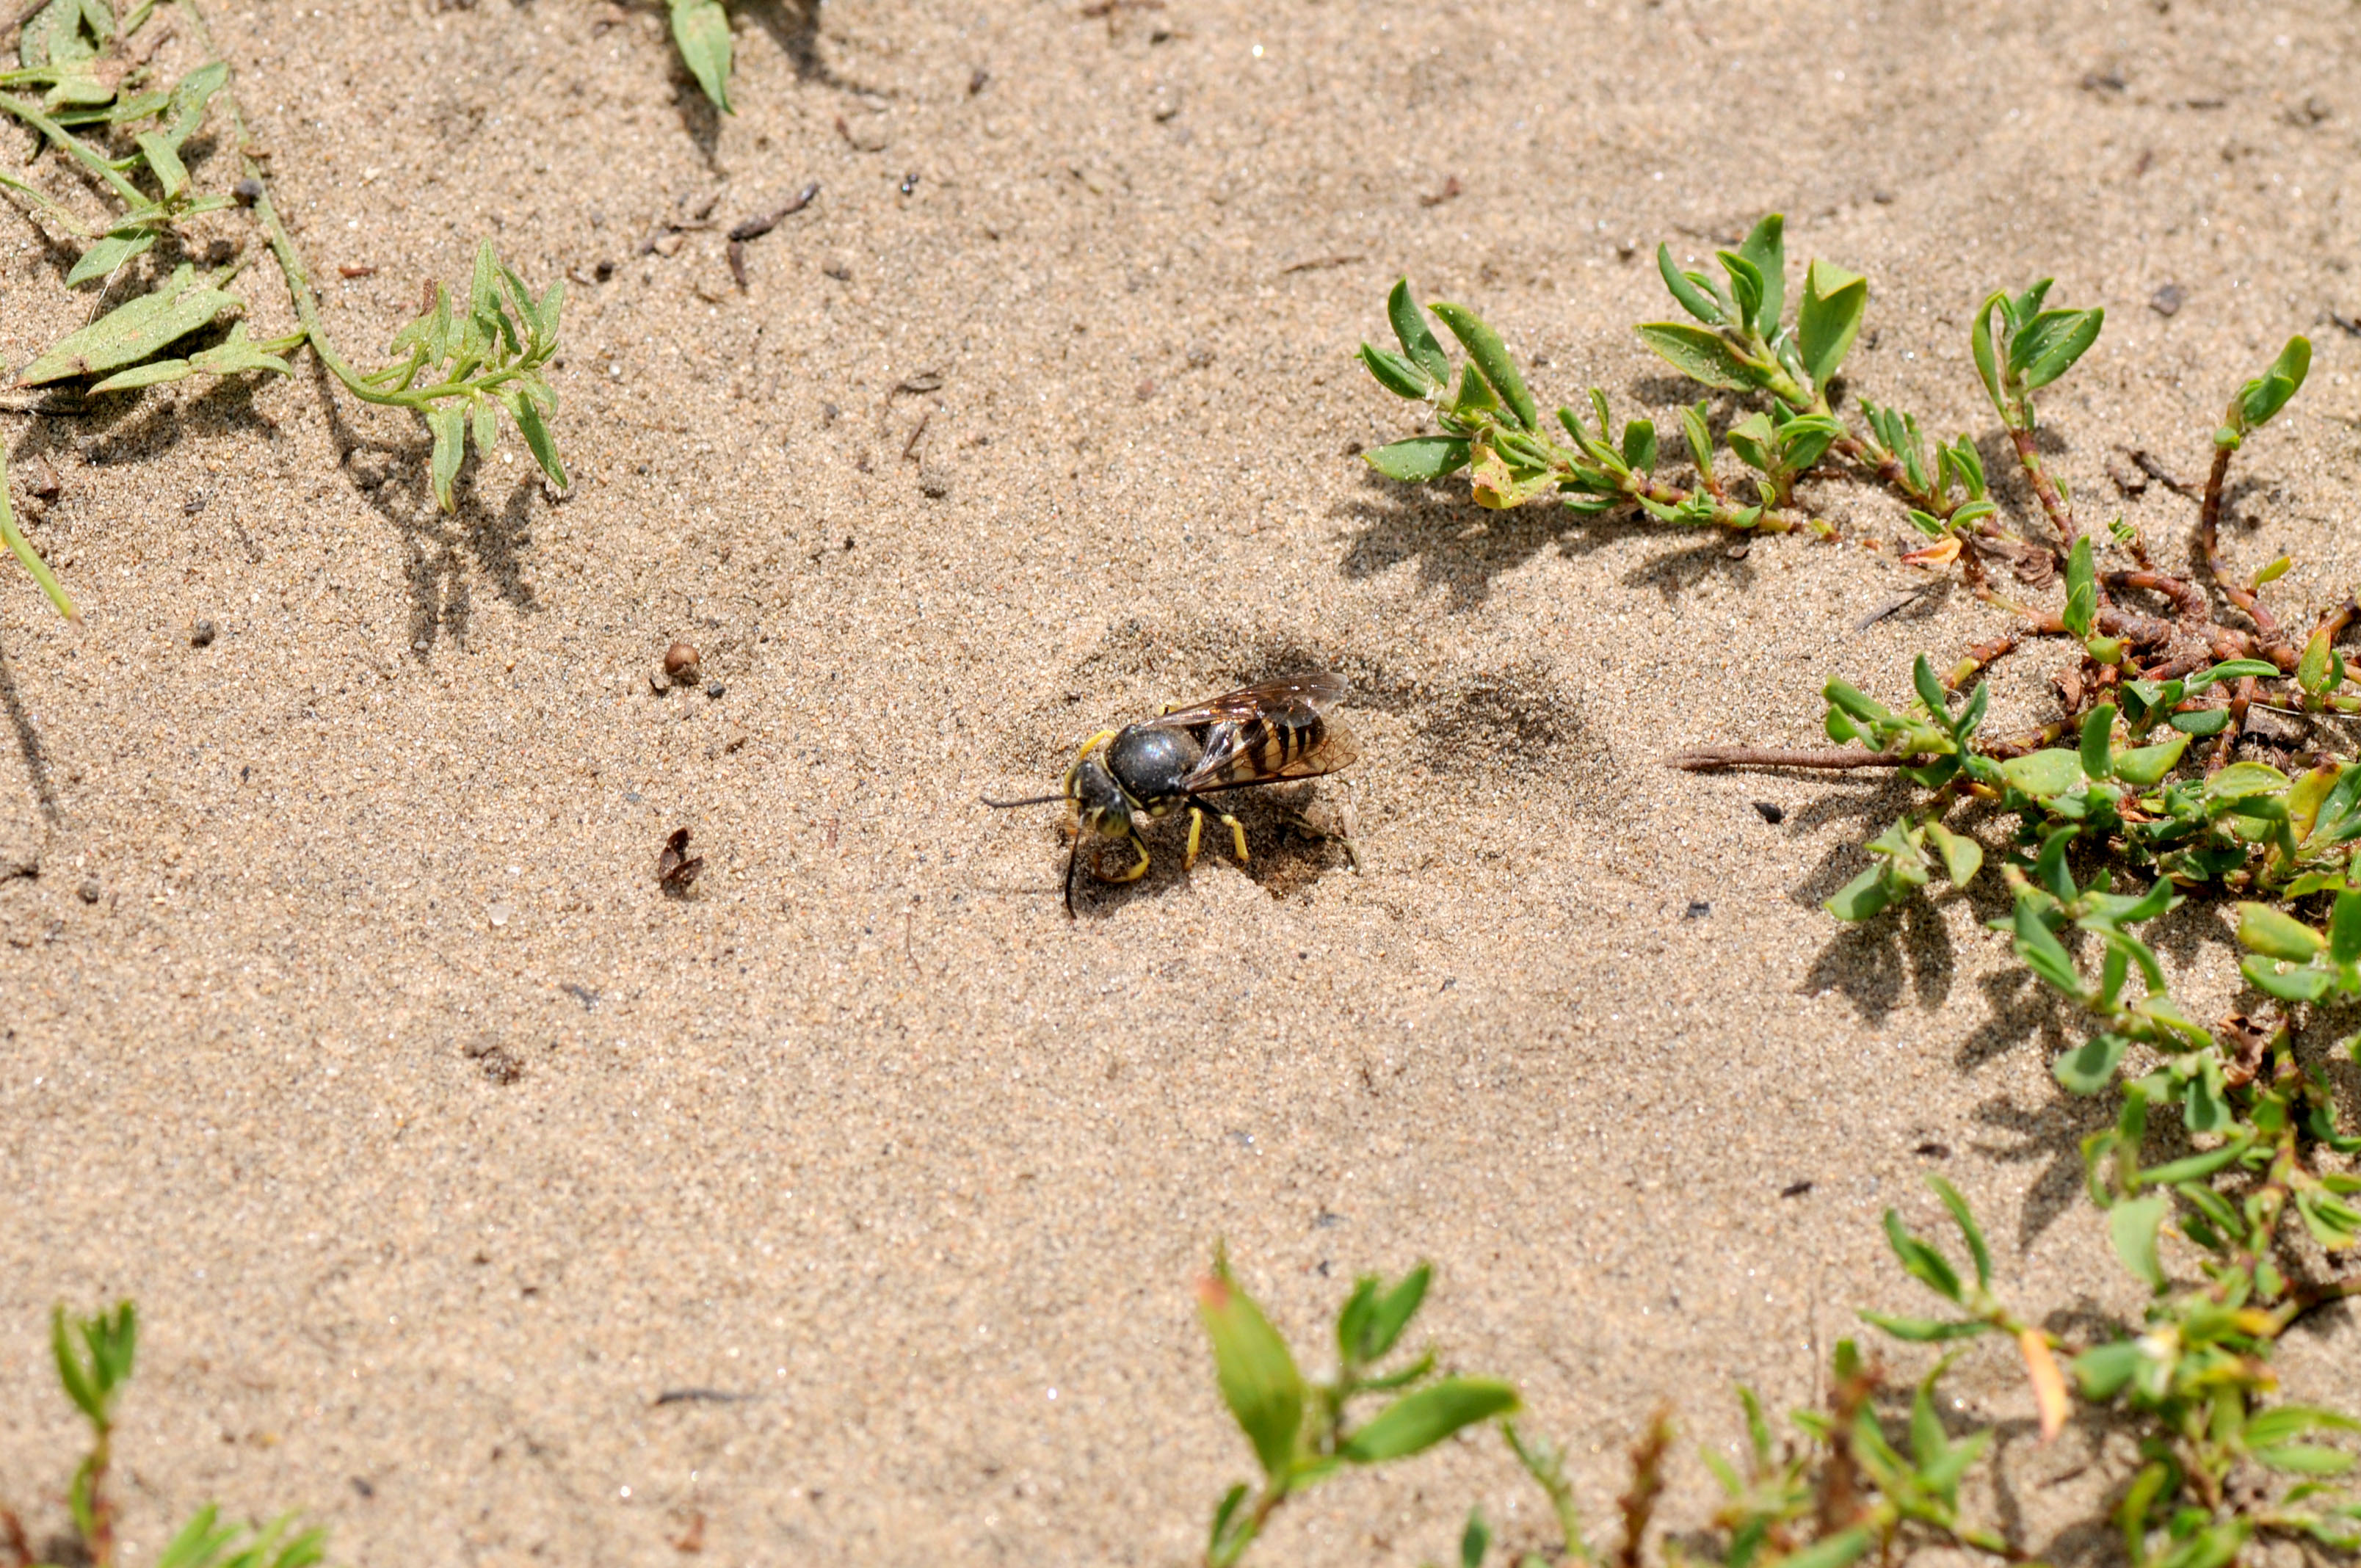 Sand wasp